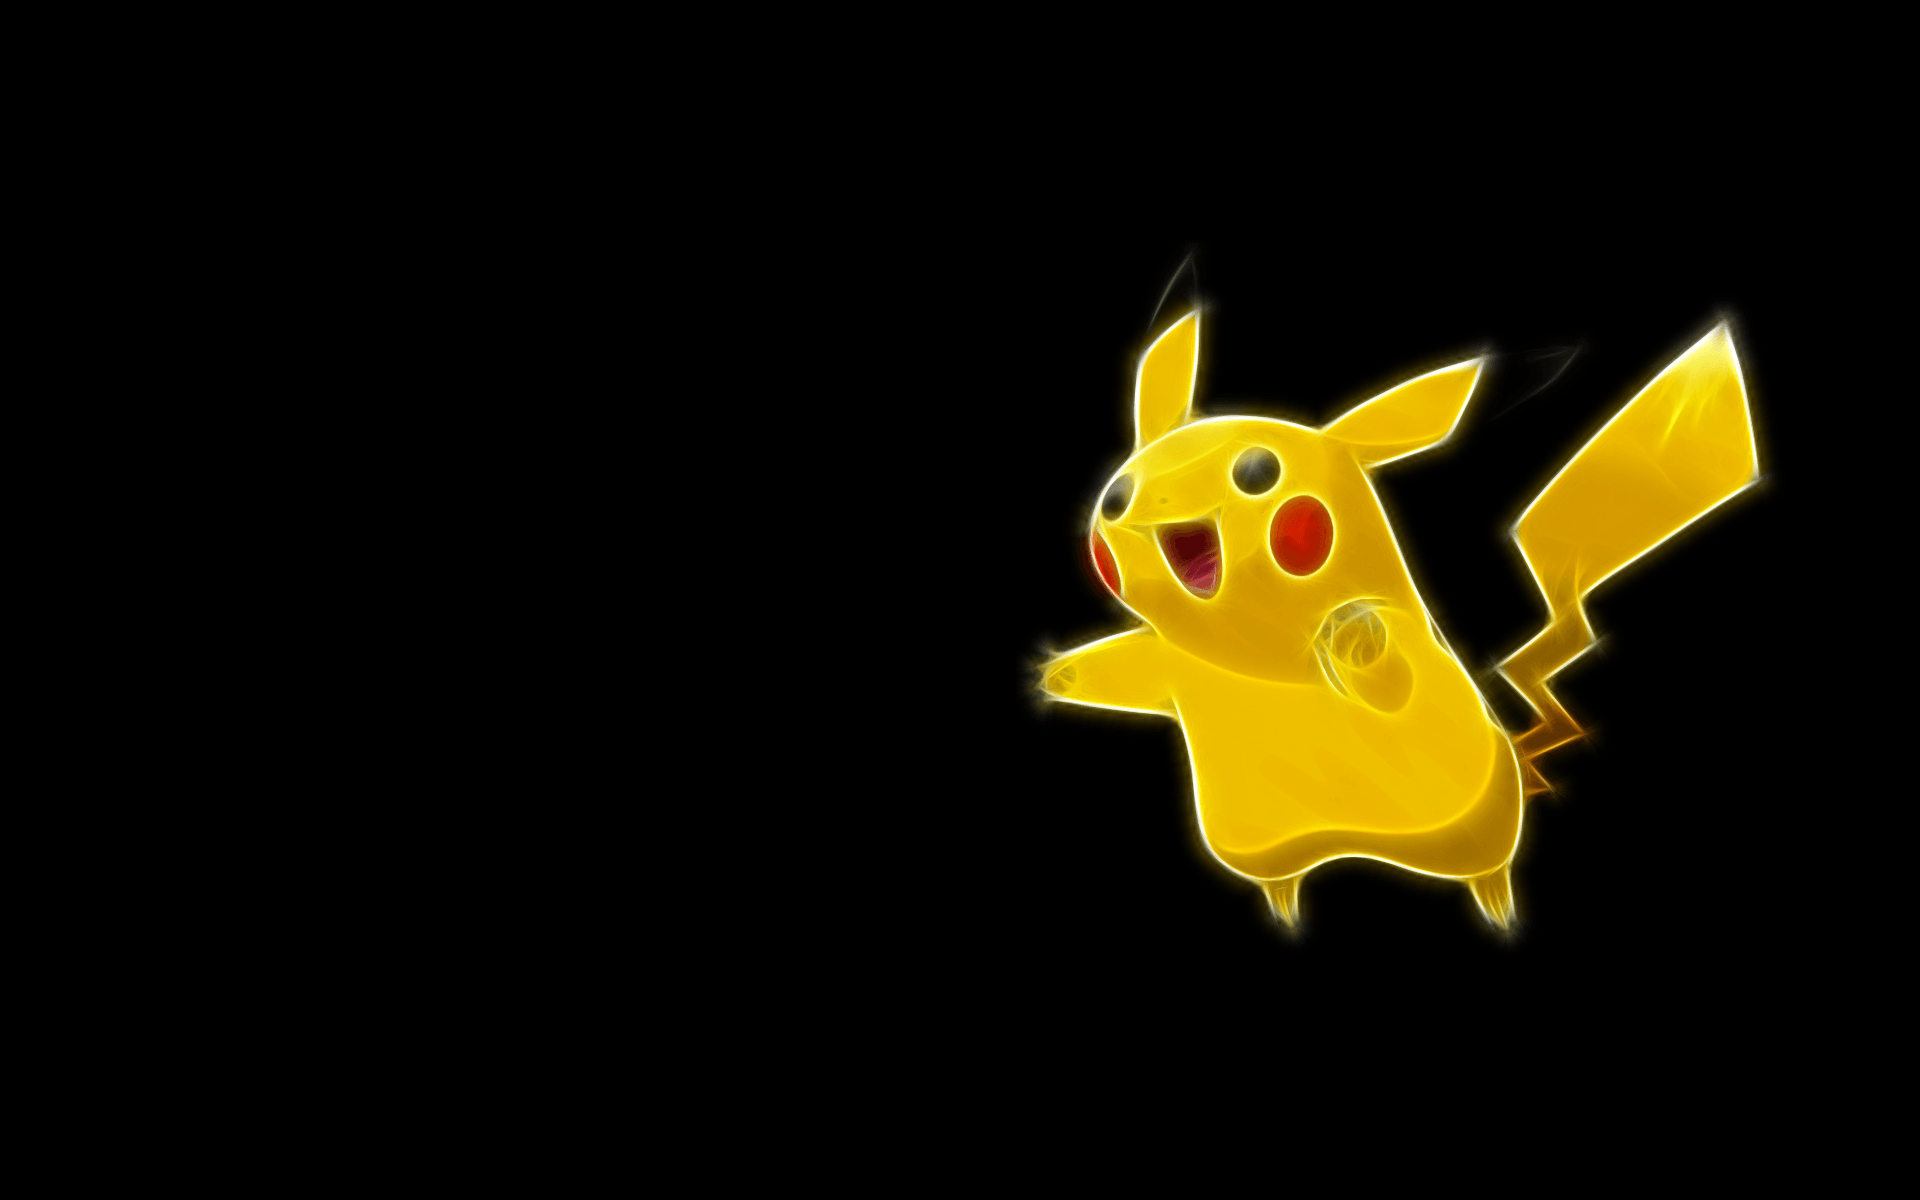 pikachu pokemon wallpaper - photo #7